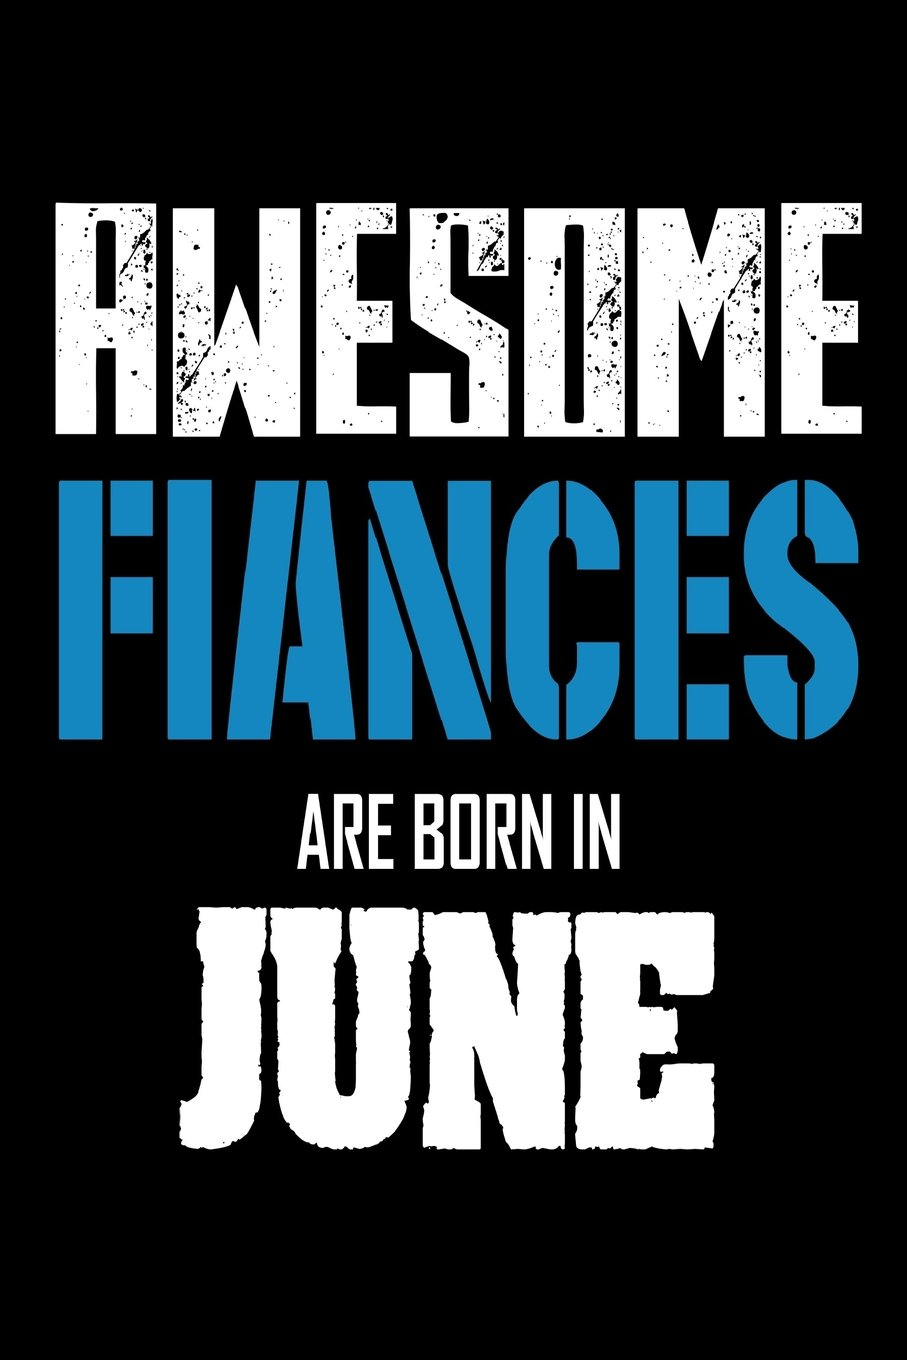 Awesome Fiances Are Born In June Best Future Husband Ever Birthday Gift Notebook Paperback May 3 2018